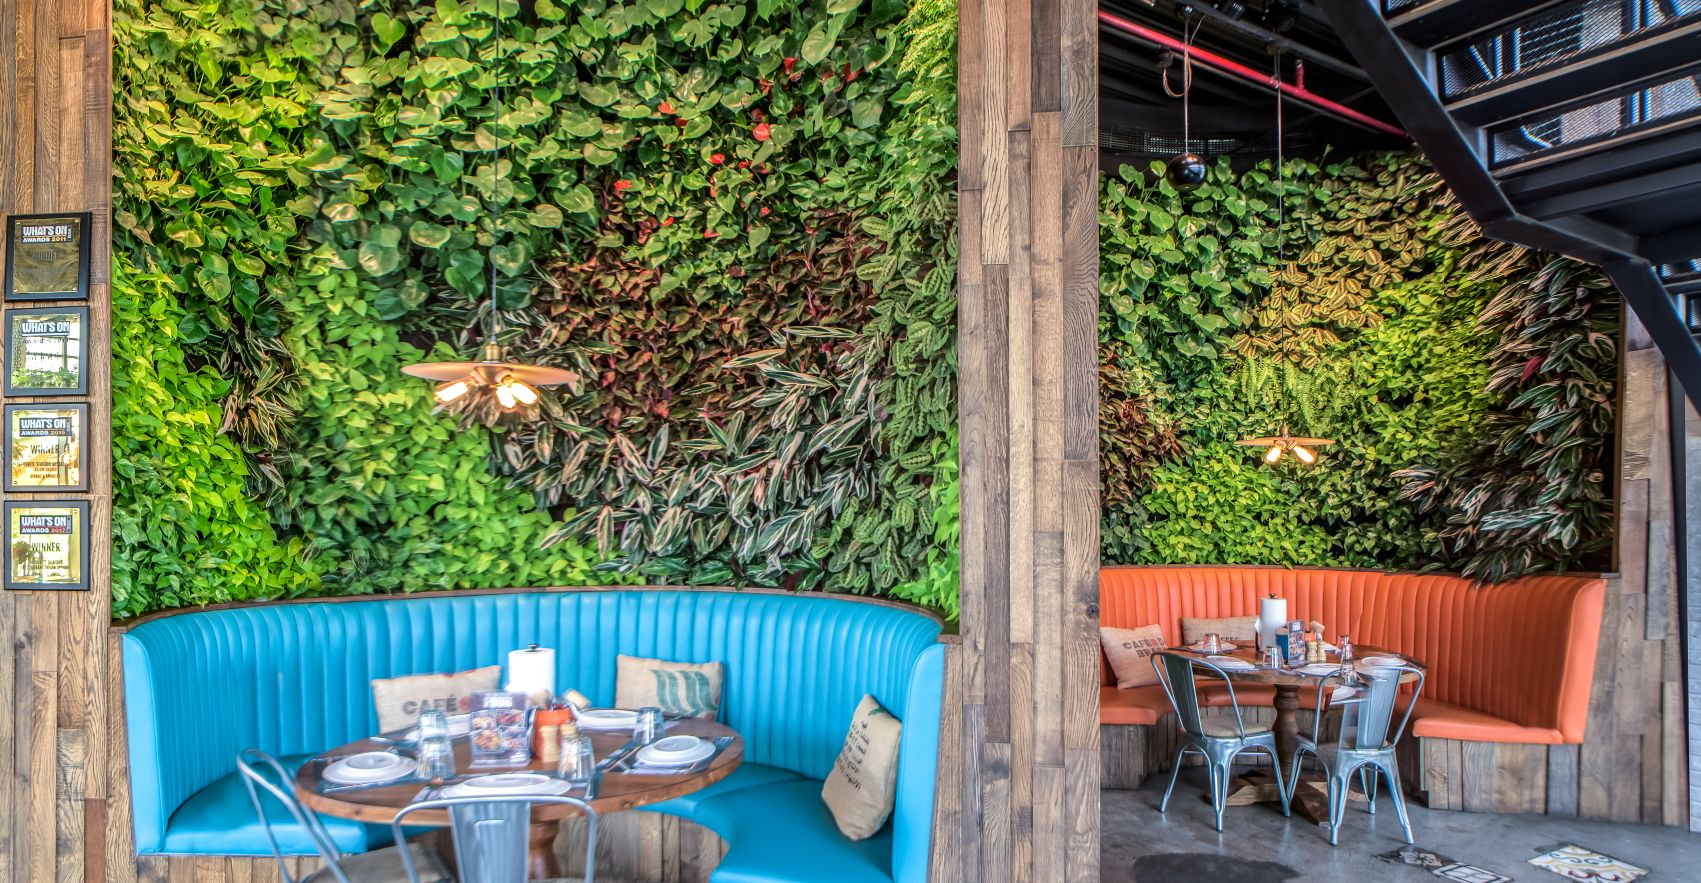 Green Wall Restaurant Installation from Planters